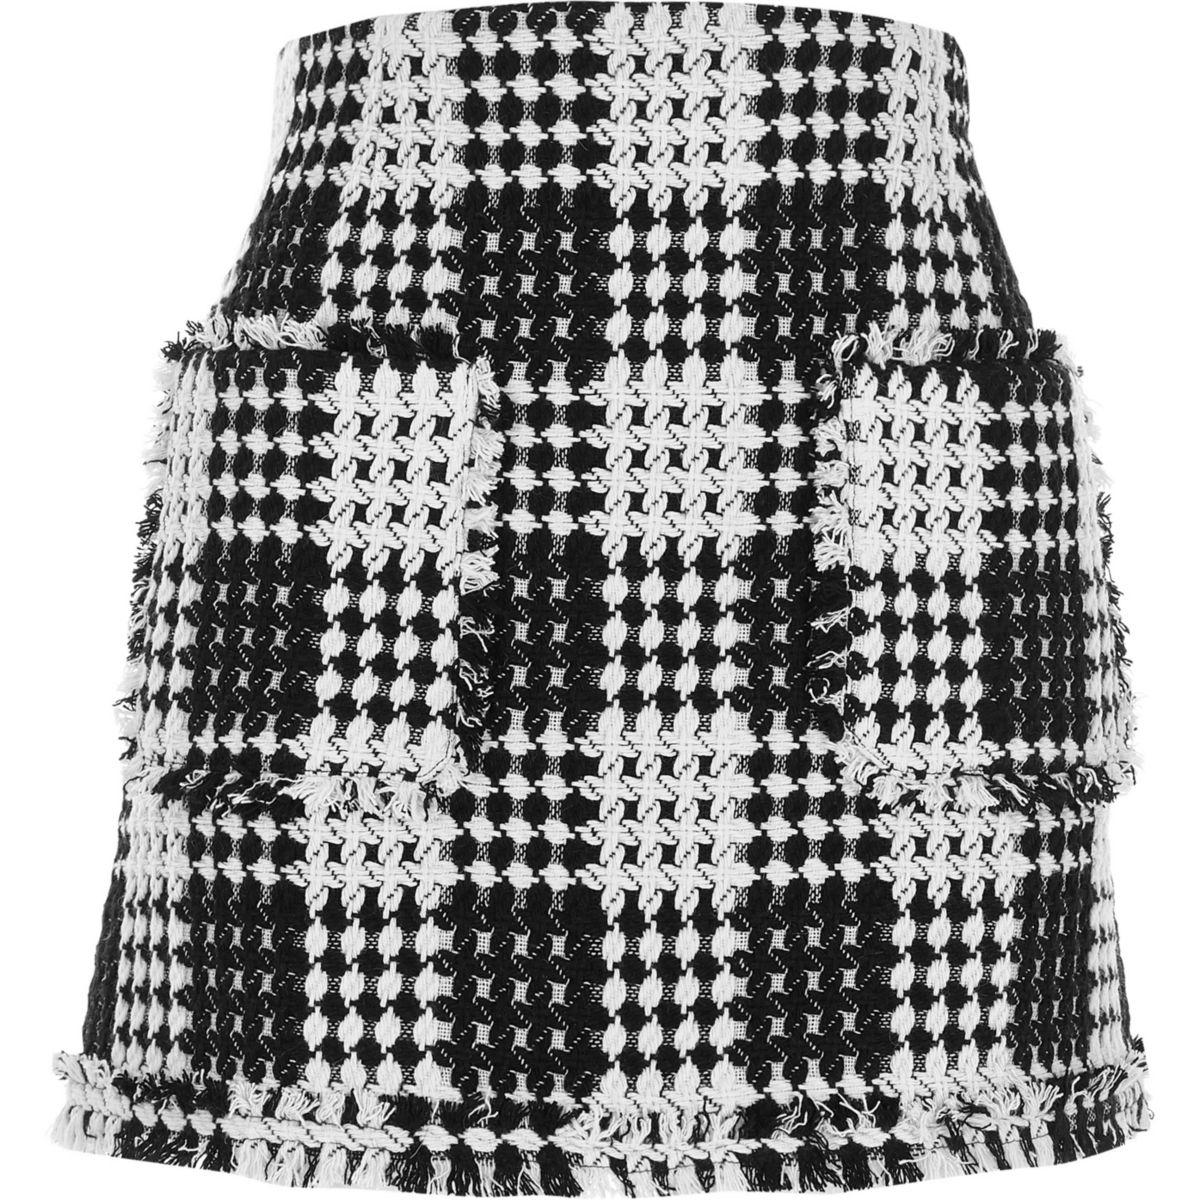 Black and white woven knit mini skirt